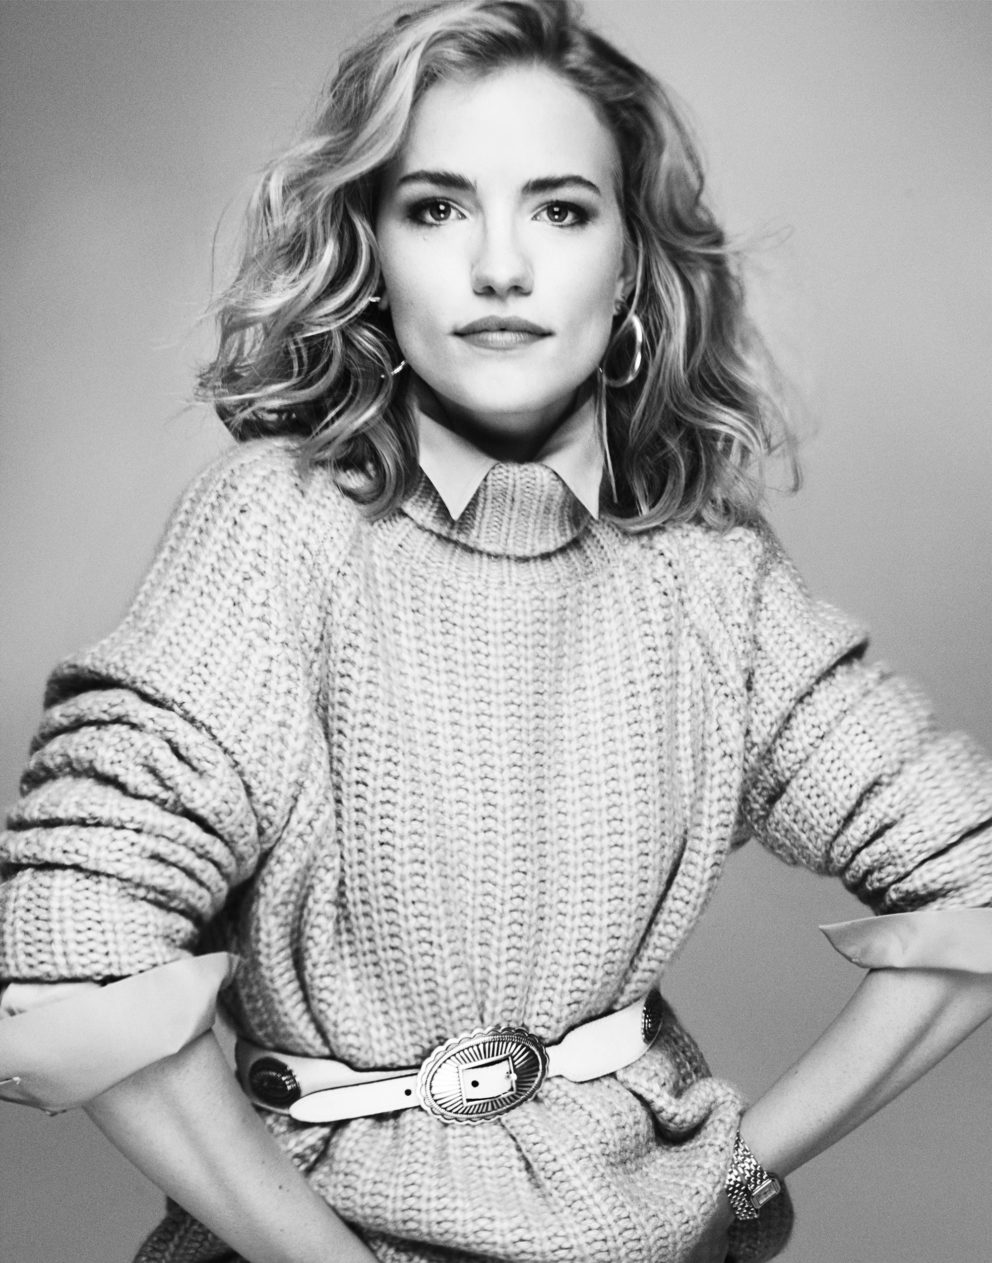 190925 0010 Sbjct Willa Fitzgerald 152 By Christian Hogstedt